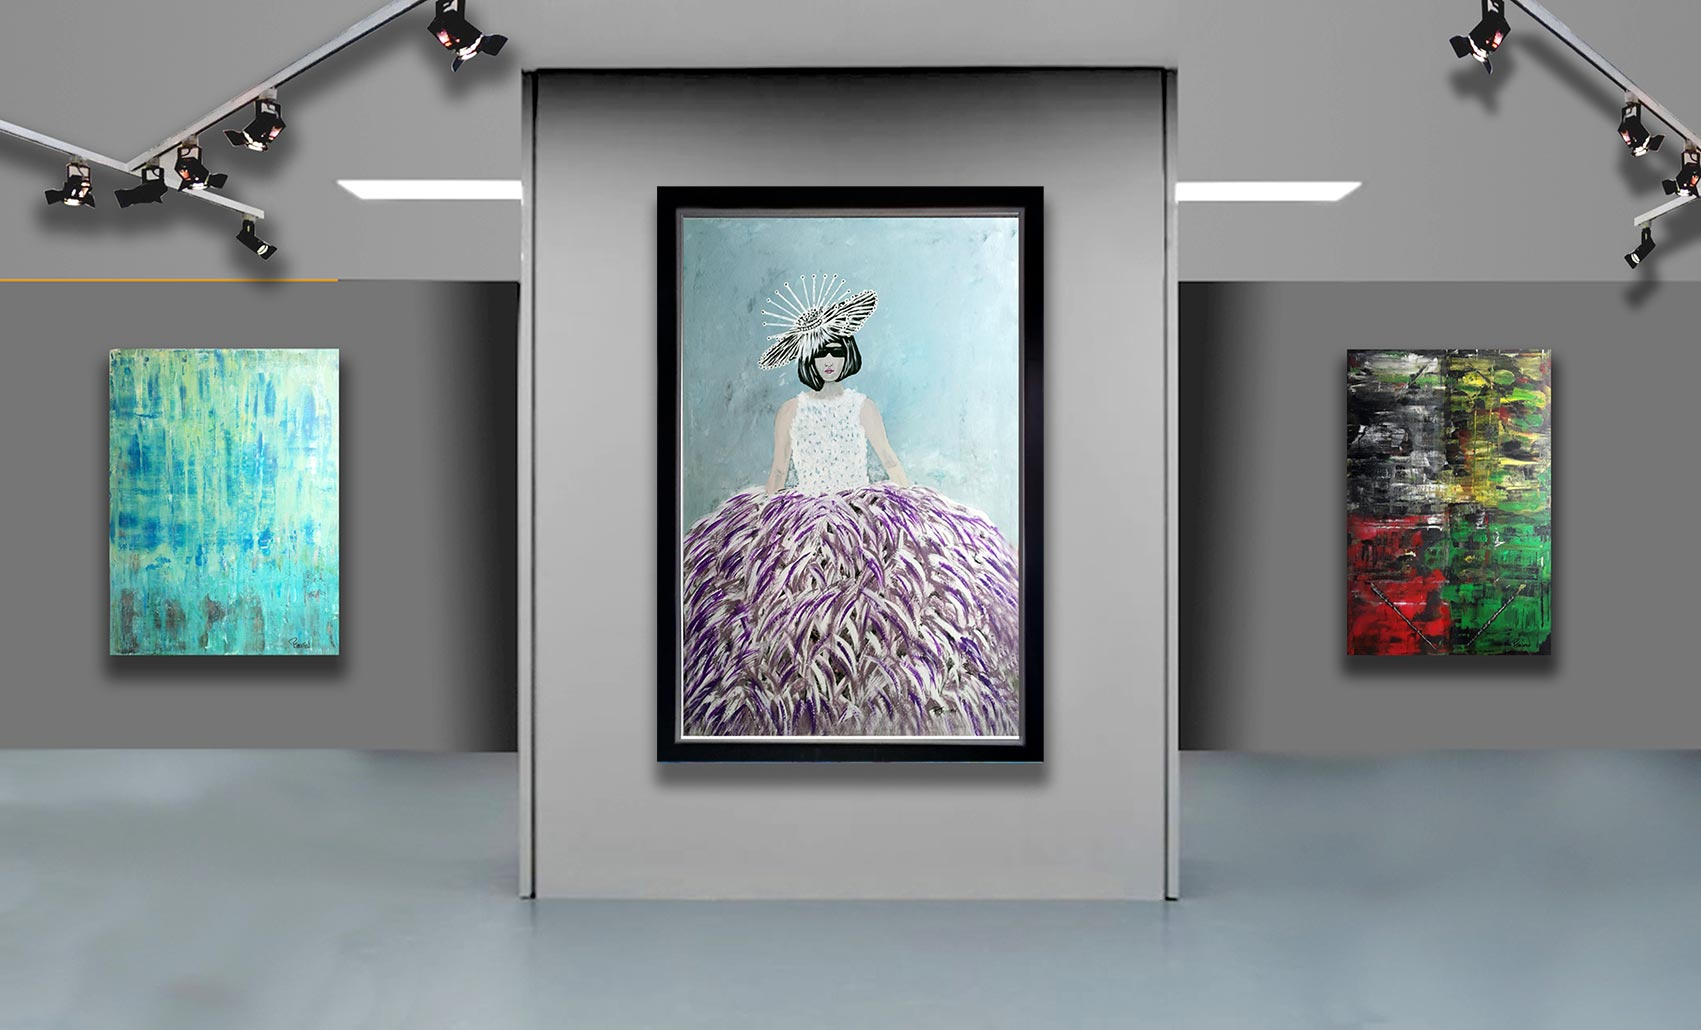 CATWALK-Iady-with-feathers-Patrick-Joosten-expo